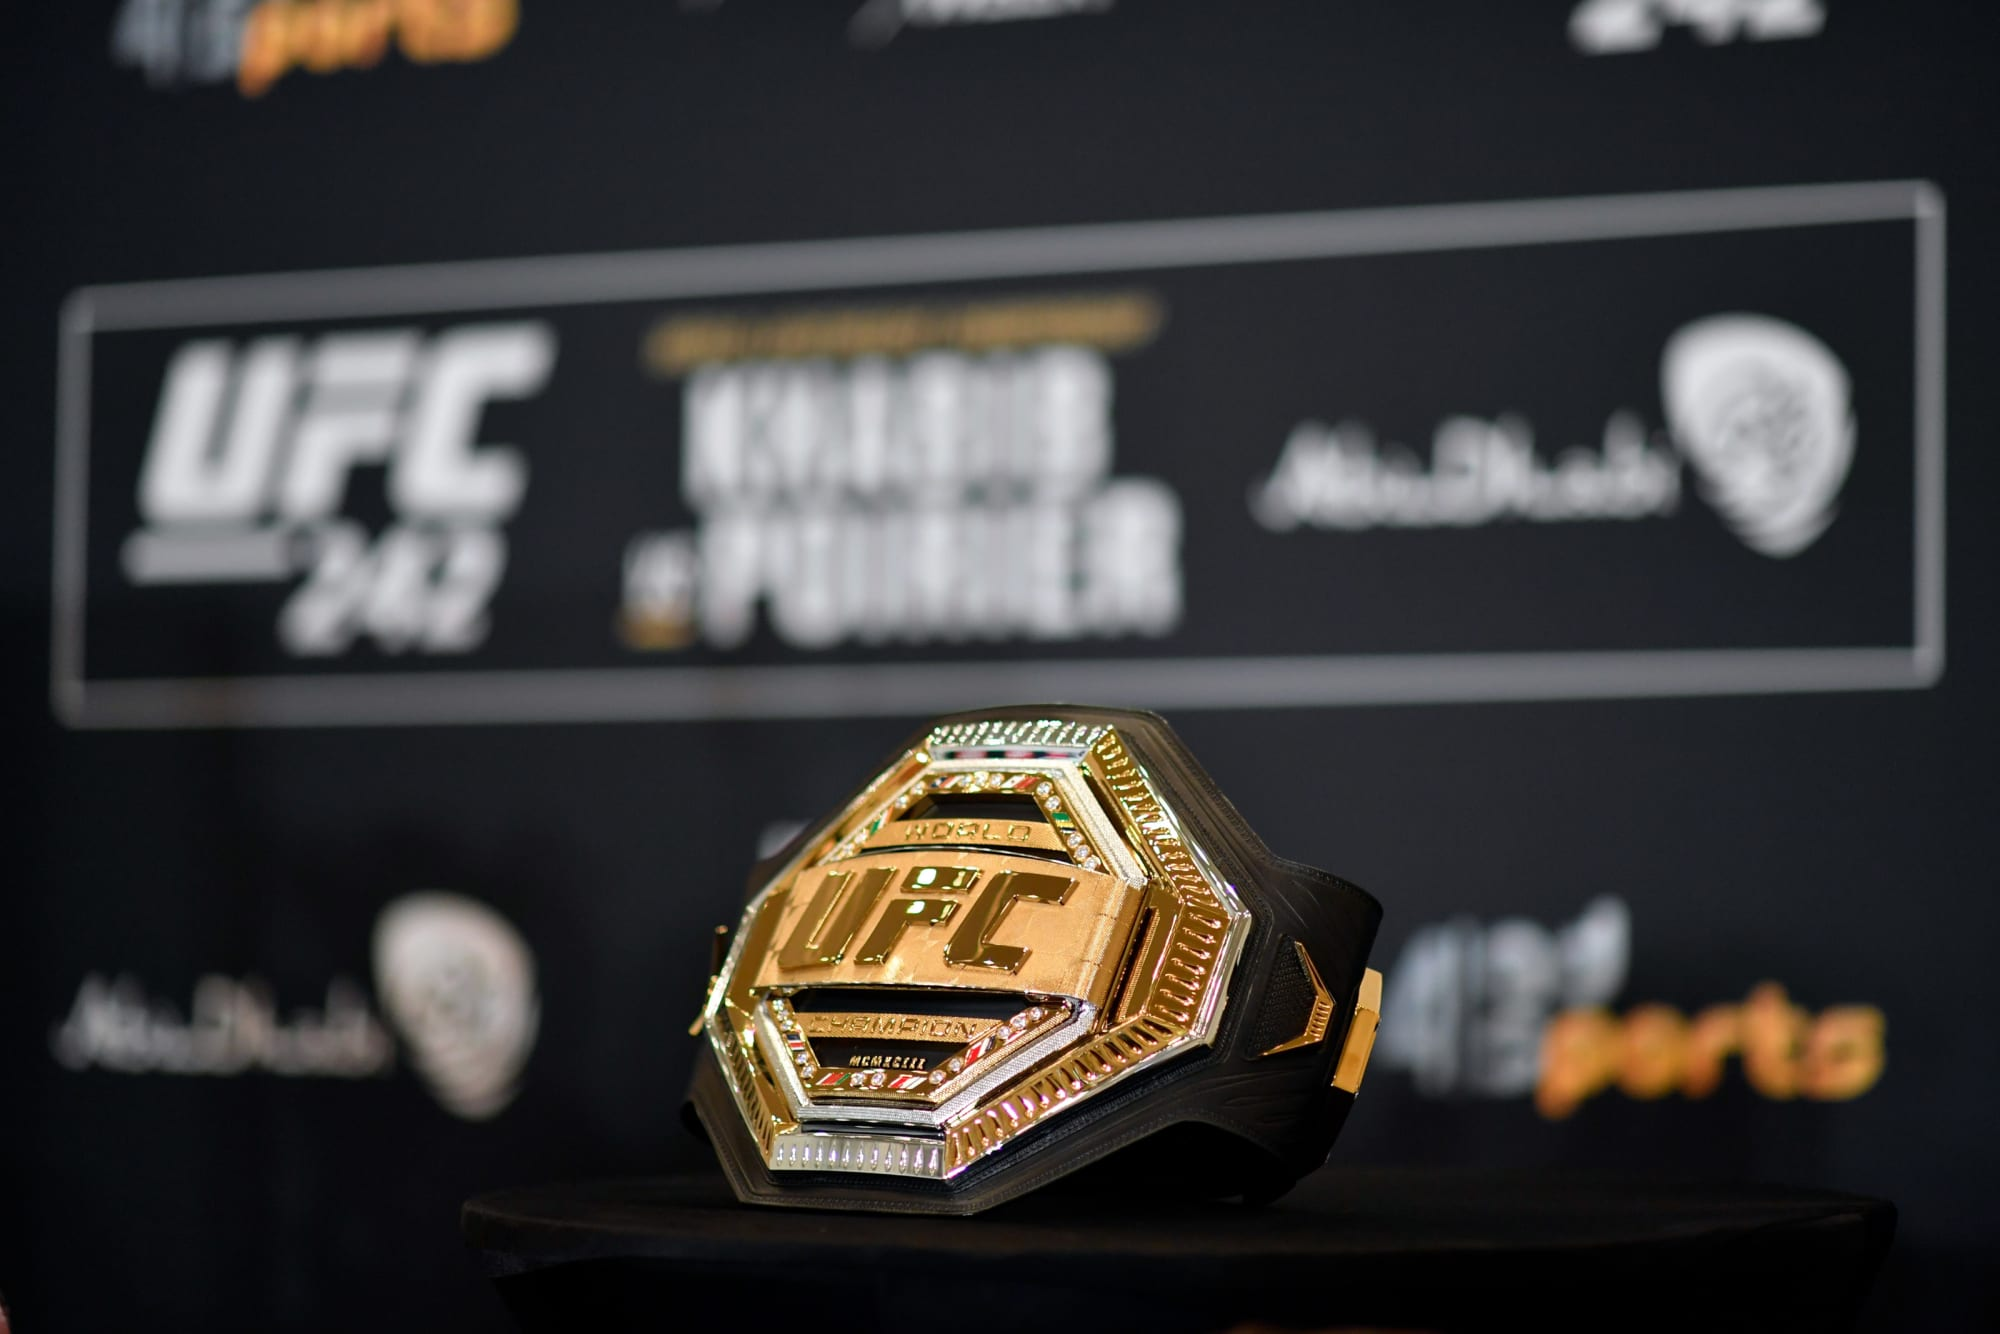 A detailed timeline of every UFC champion since the start of the new millennium